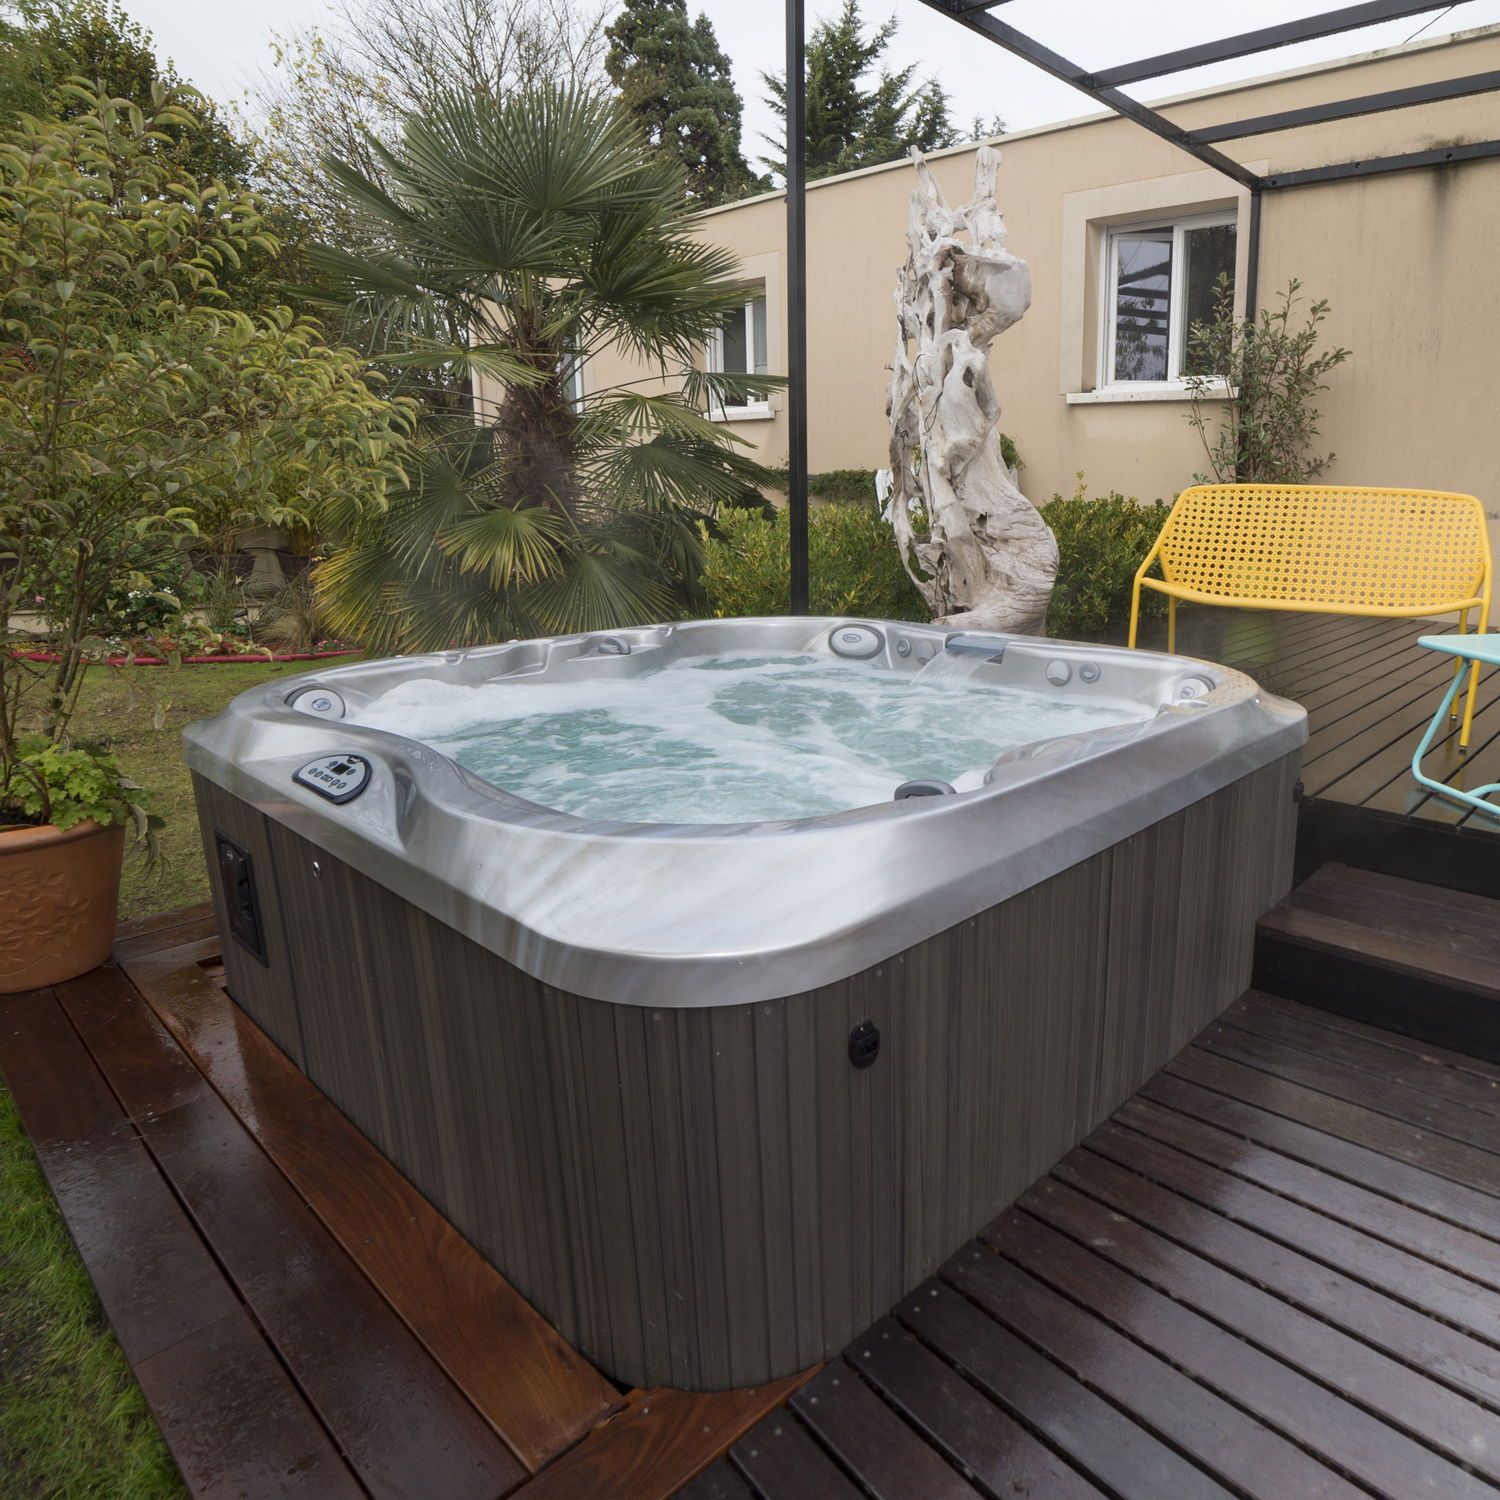 square above ground pool. Above-ground Hot Tub / Square 5-person 4-seater - J-335™ Above Ground Pool S